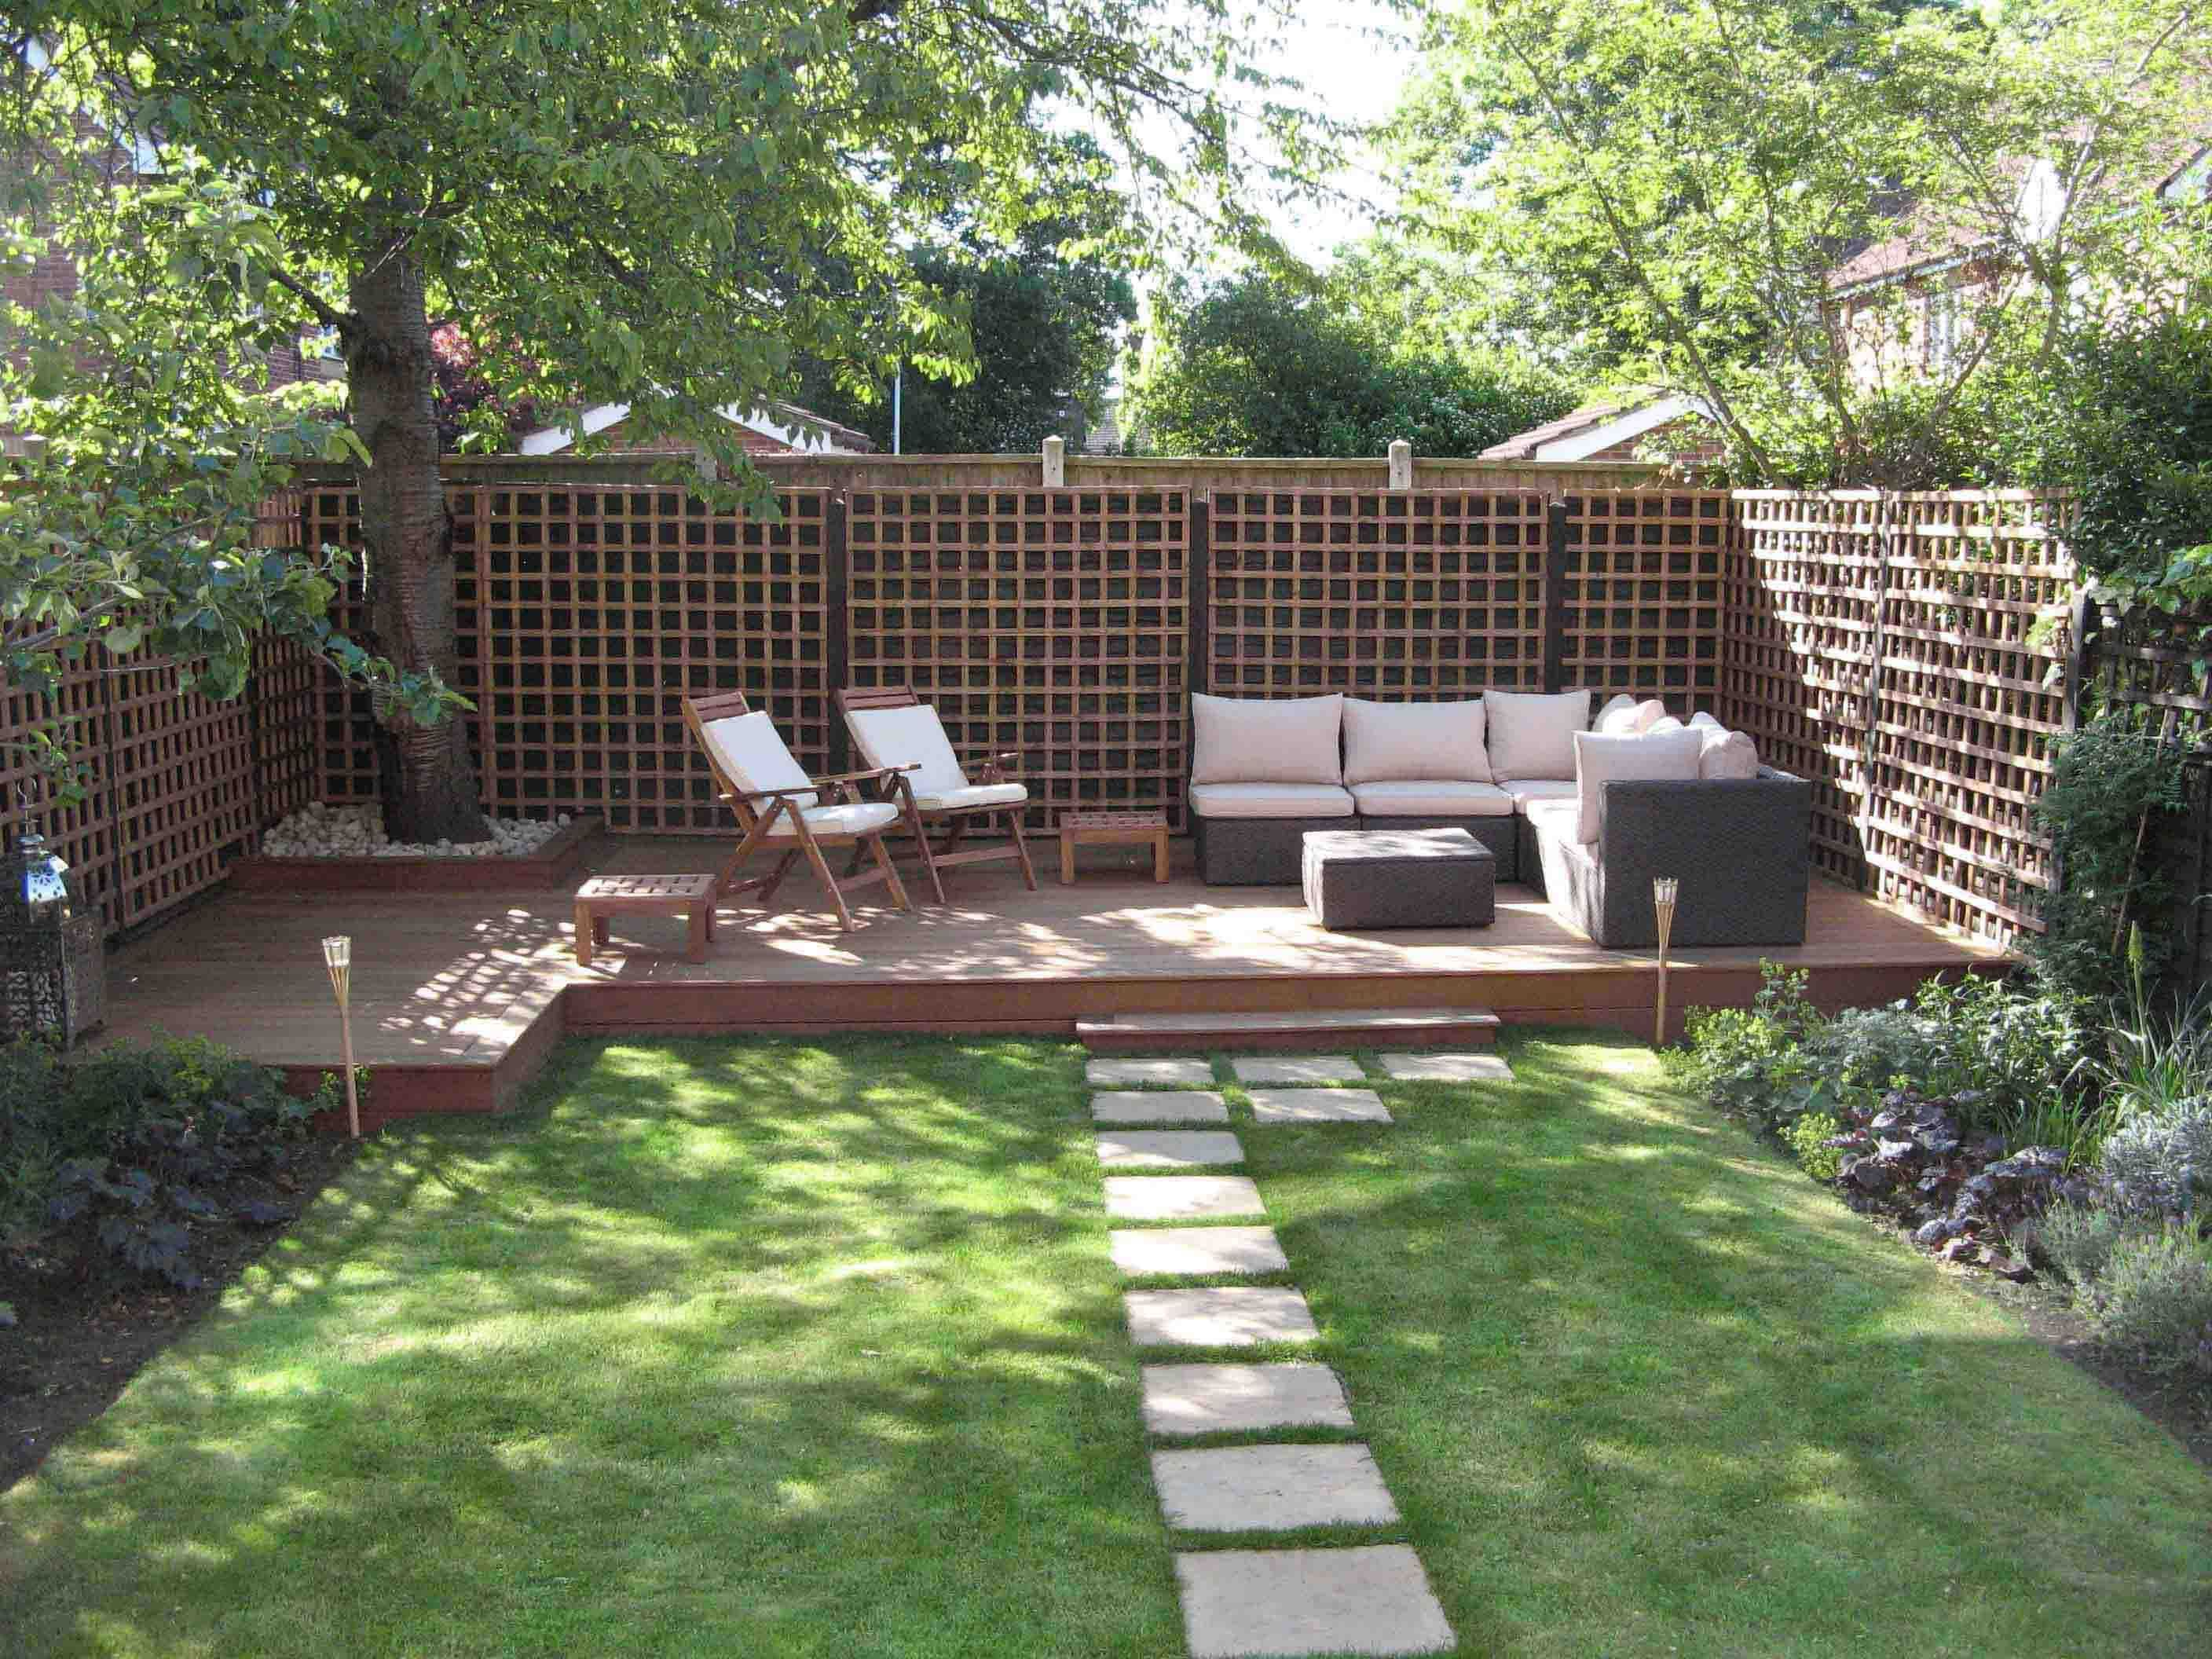 backyard patio designs on a budget - Small Backyard Patio Ideas